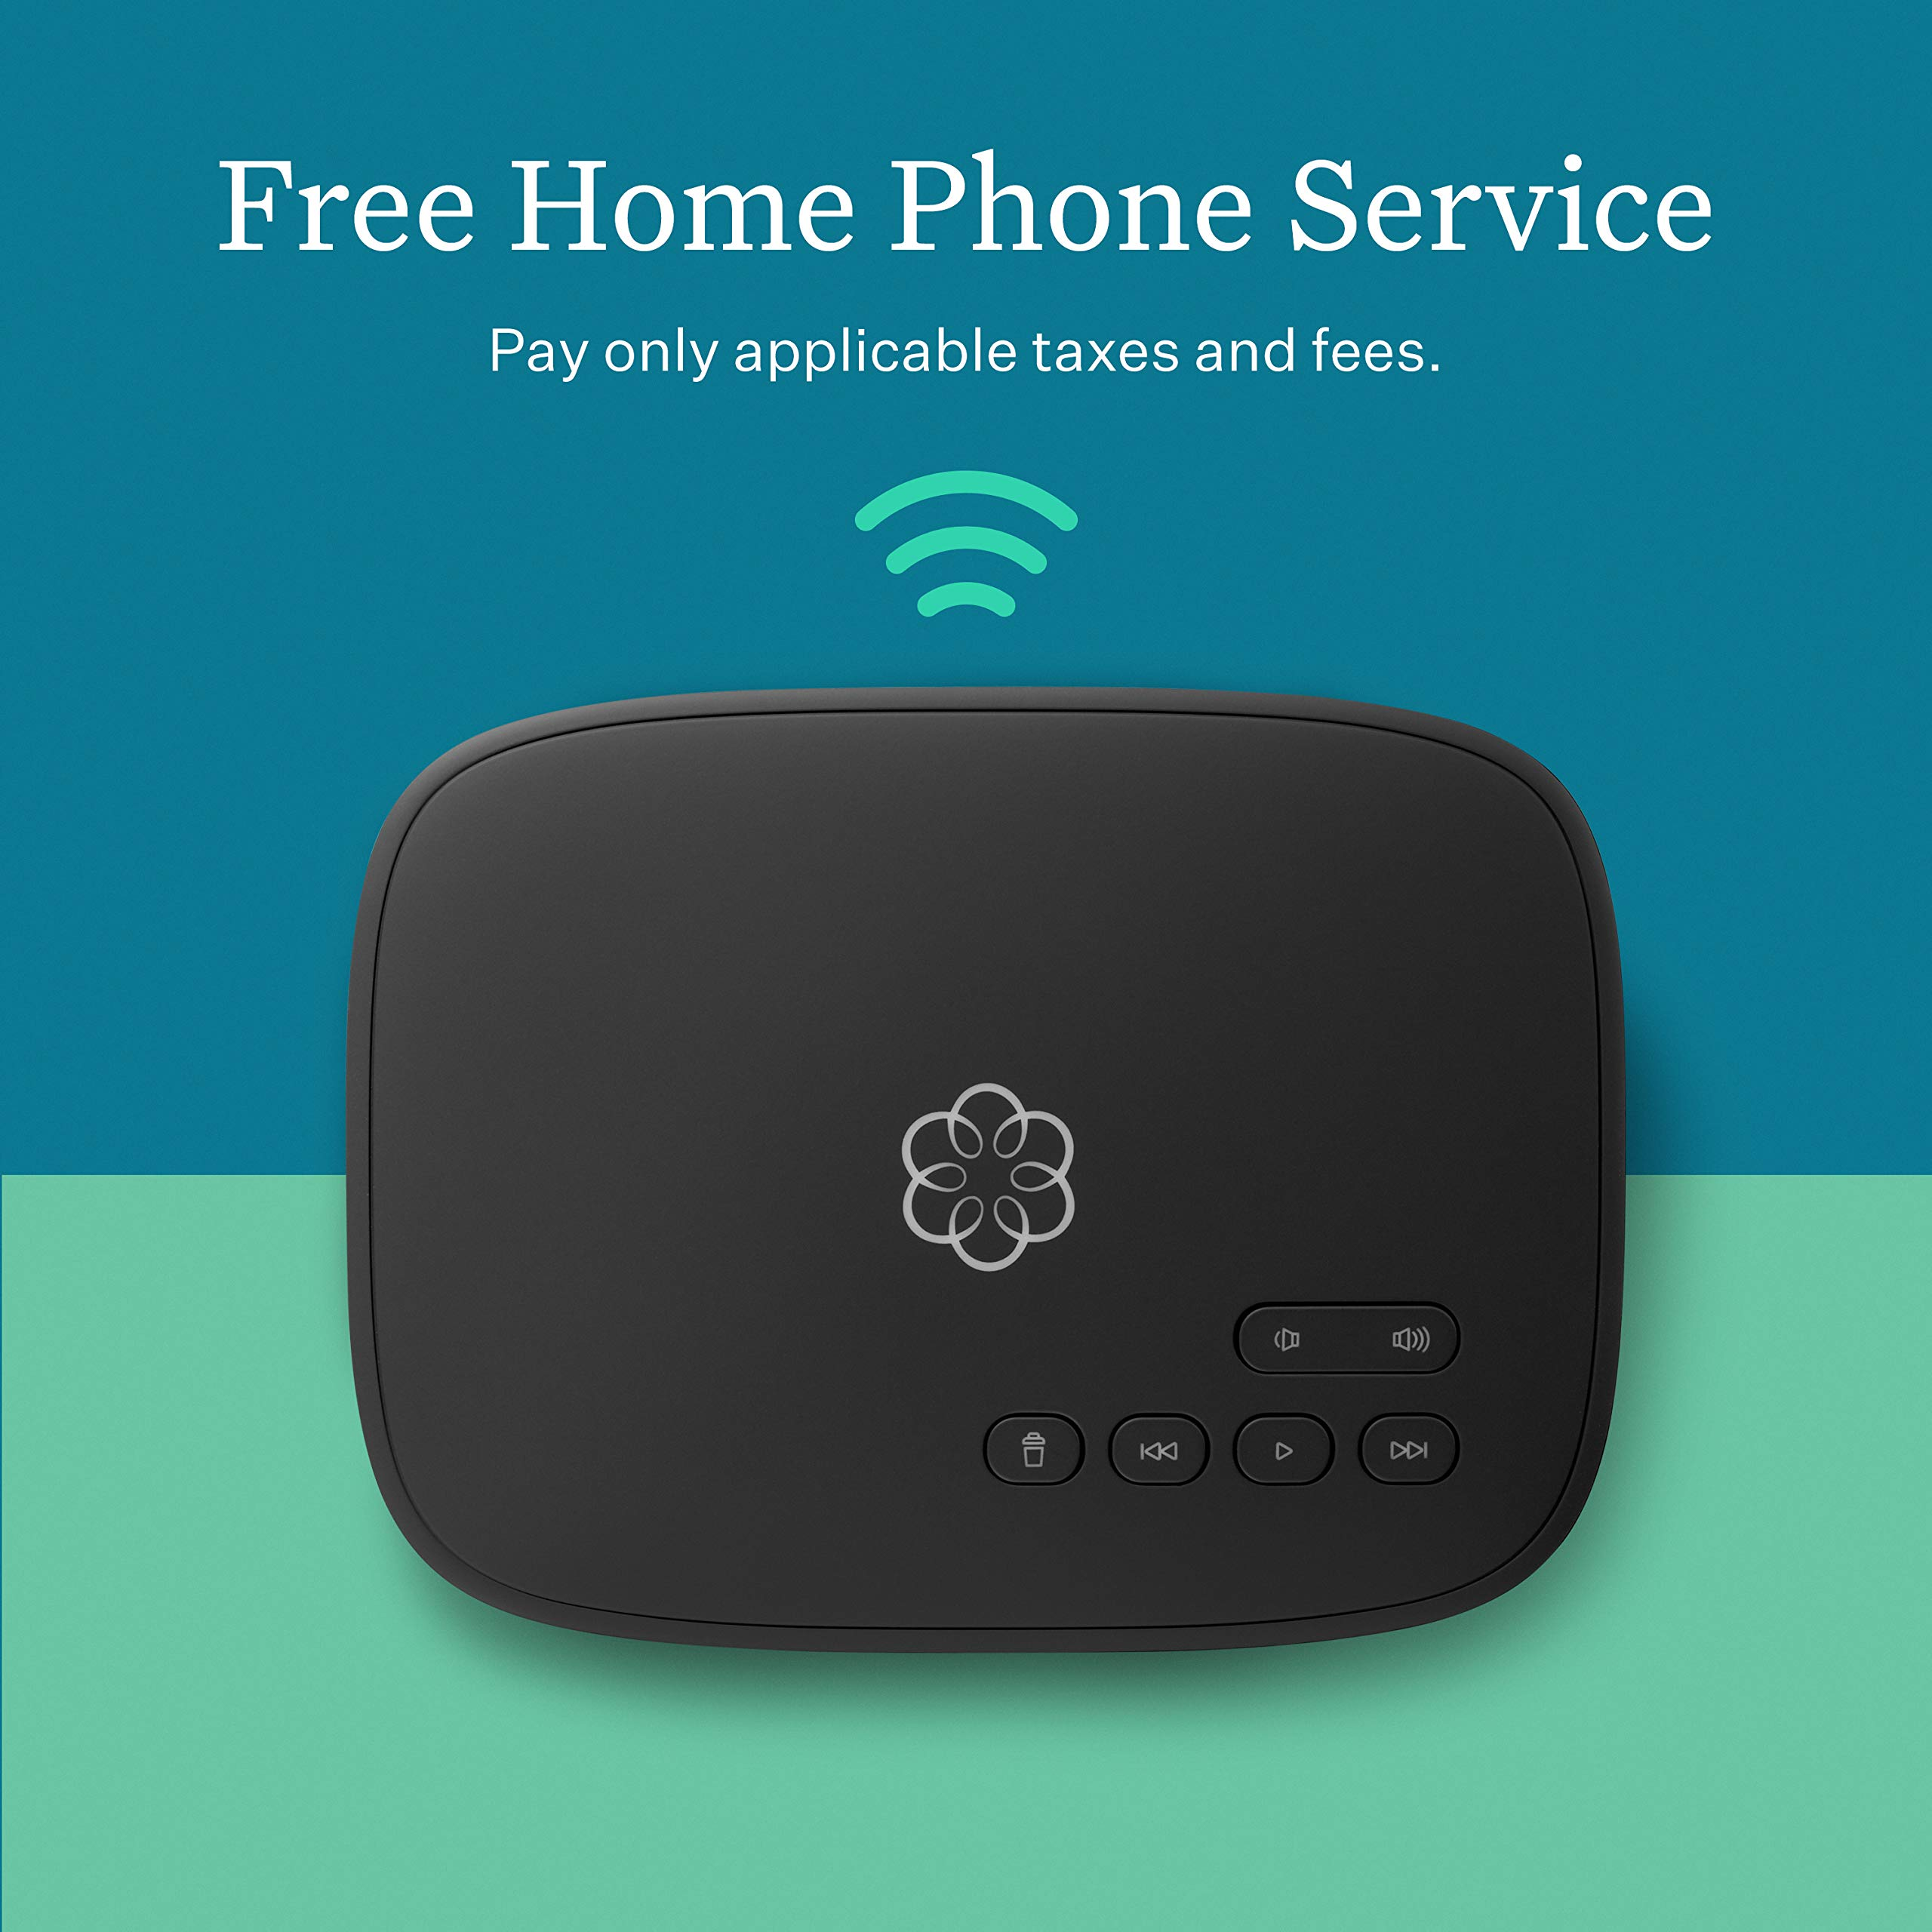 ooma Telo Air 2 Free Home Phone Service with WiFi and Bluetooth Connectivity by ooma